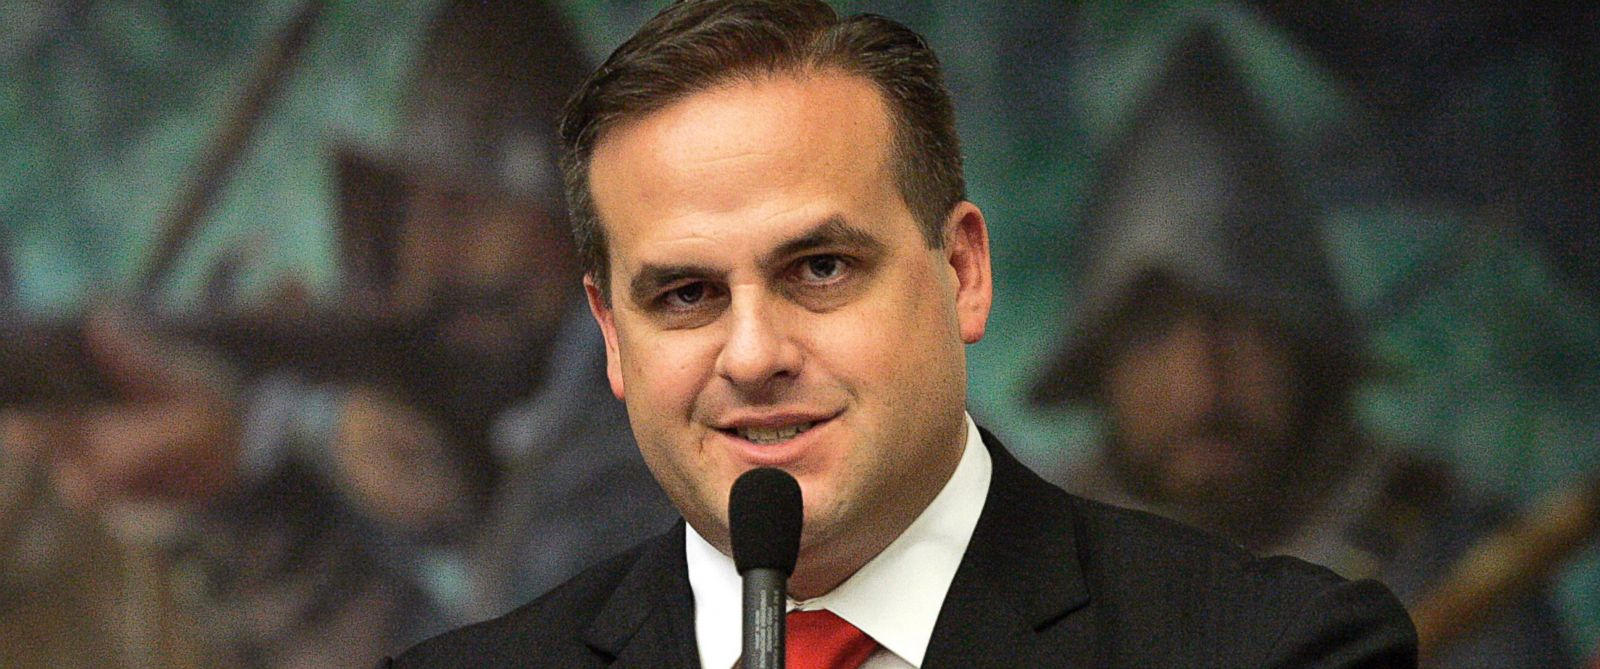 PHOTO: Republican state senator Frank Artiles asks a questions about a pip insurance bill during house session in Tallahassee, Fla., March 9, 2012.